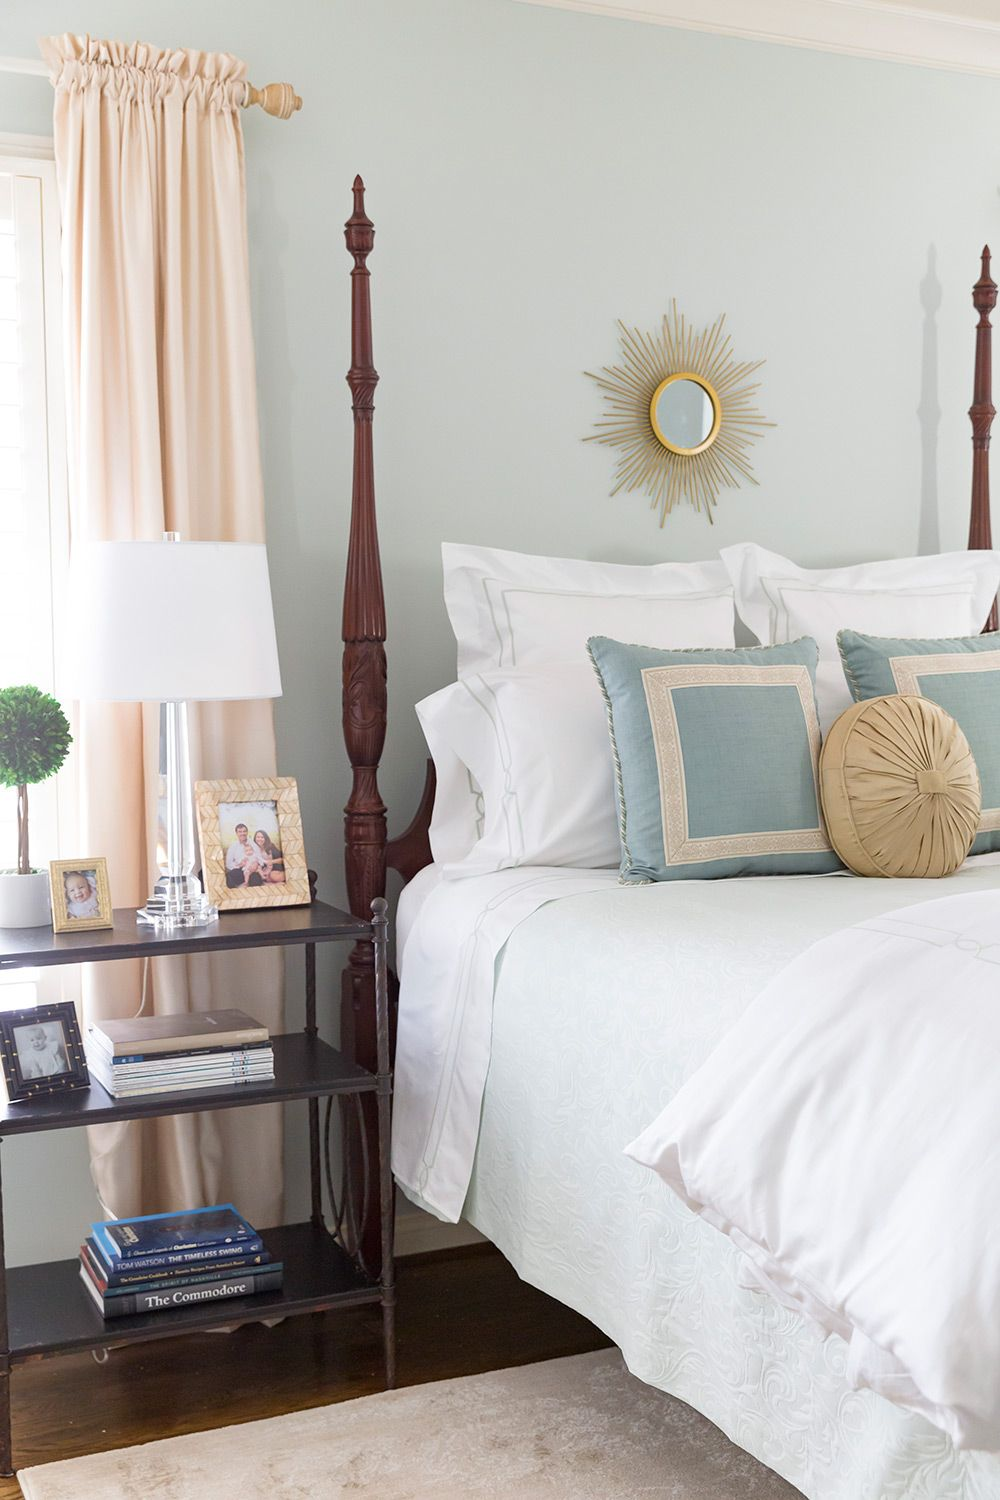 One of the most popular paint colors, take a look at what